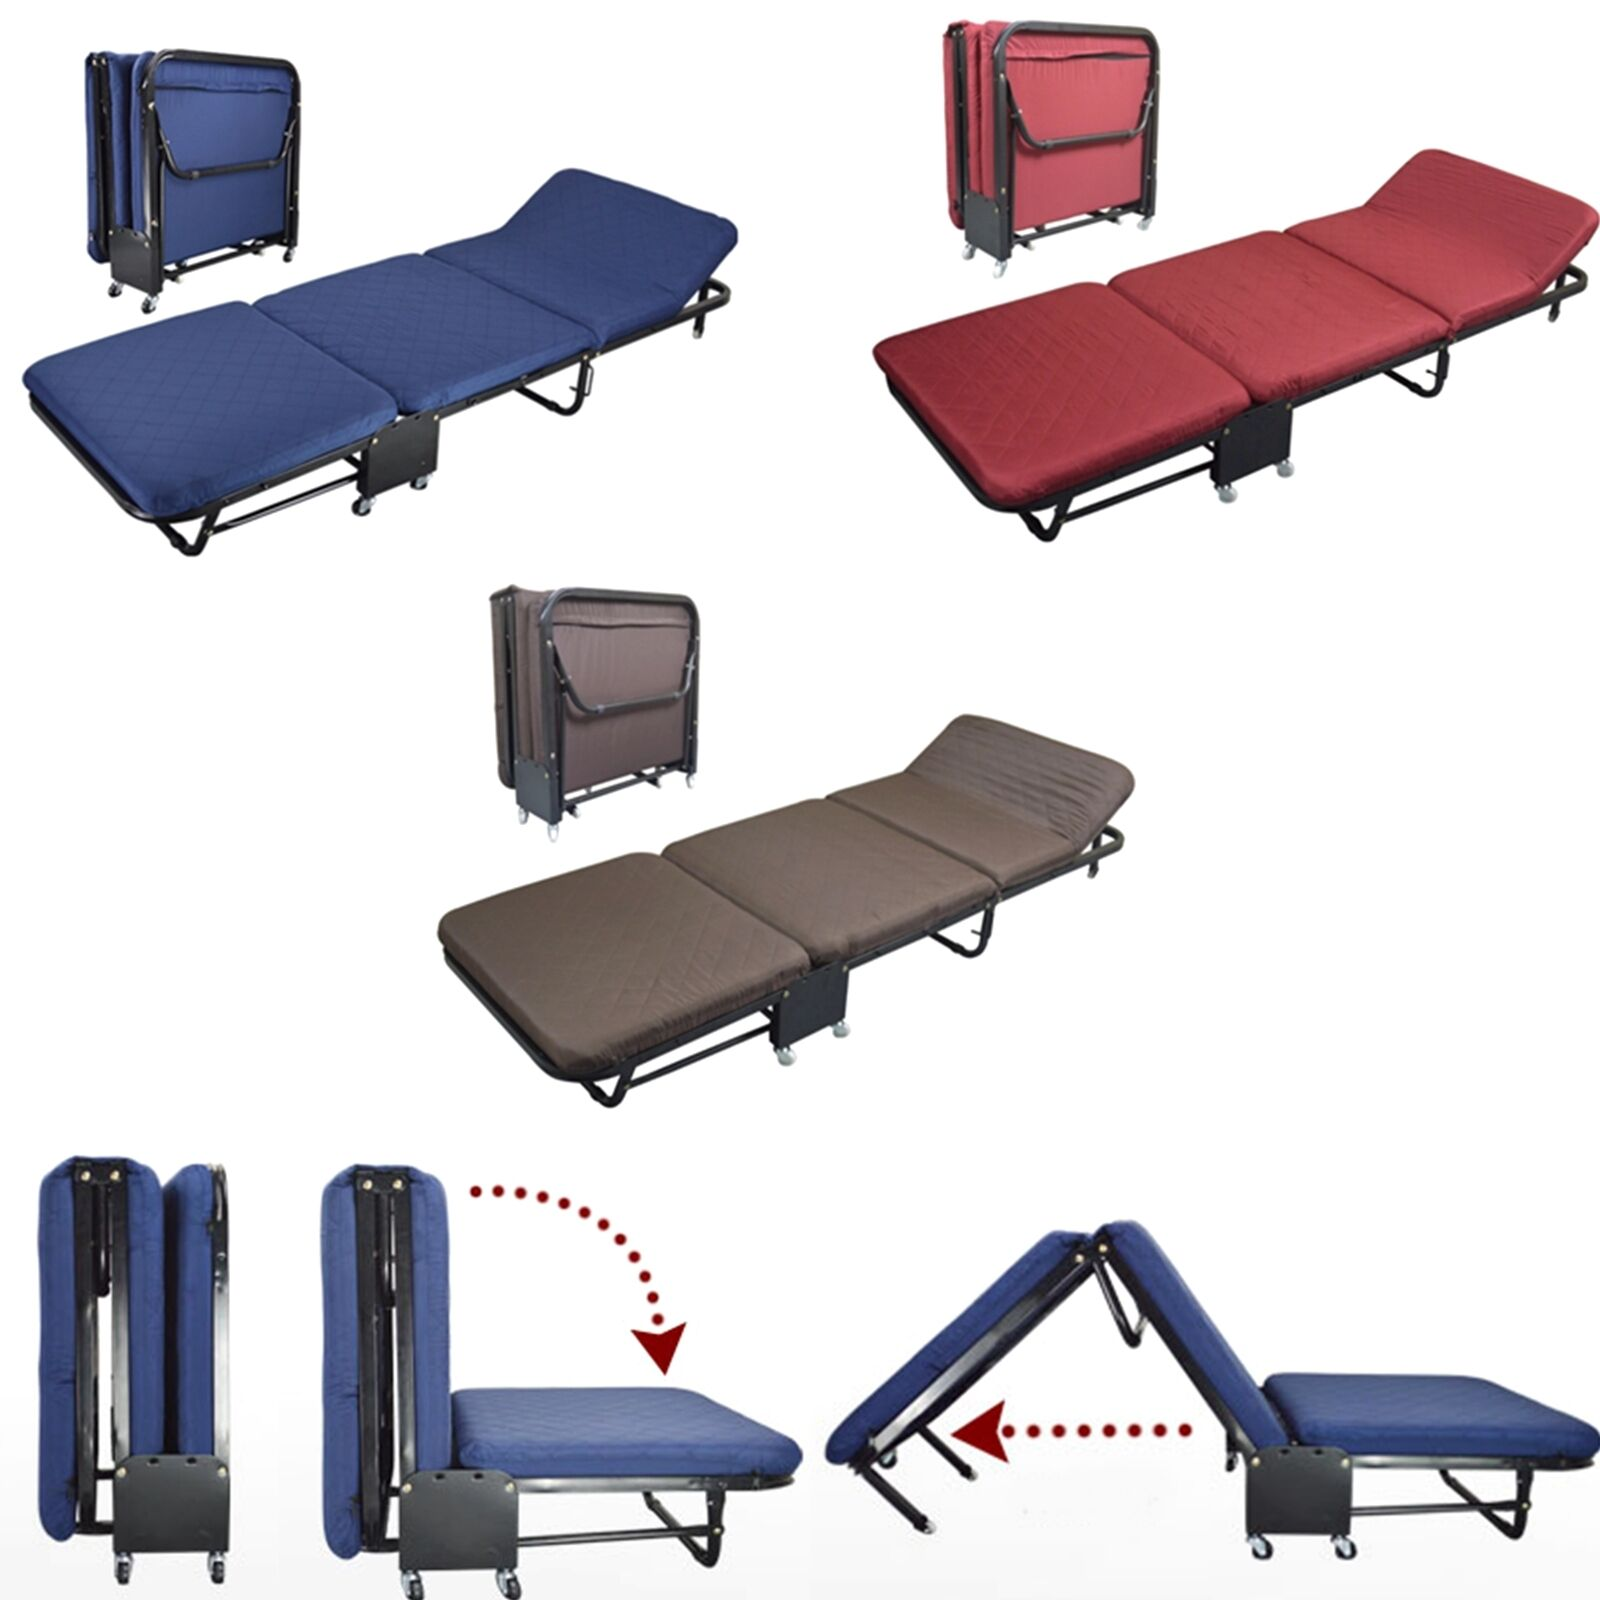 folding chair beds foam 2 small office with arms bed rollaway guest steel frame